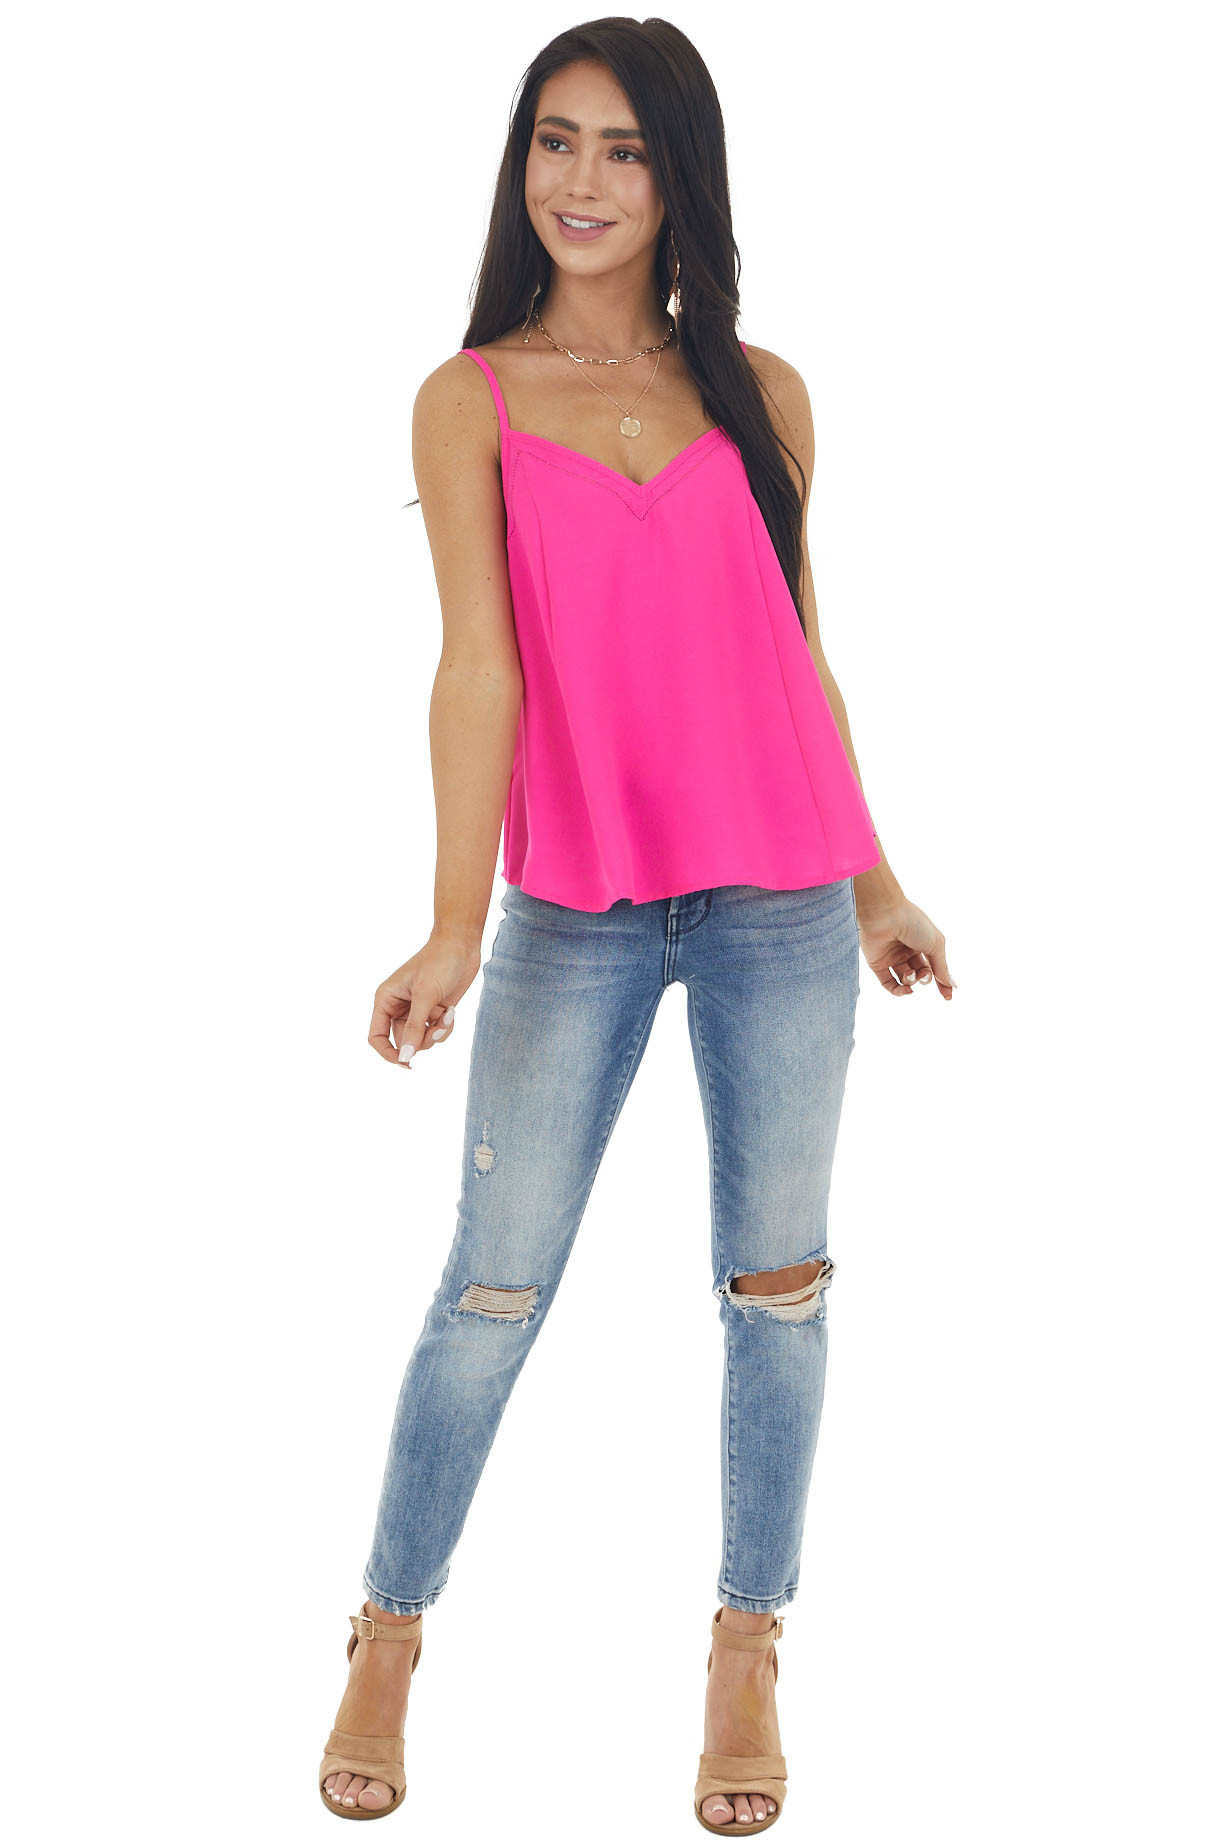 Neon Hot Pink Flowy Cami with Criss Cross Strap Details